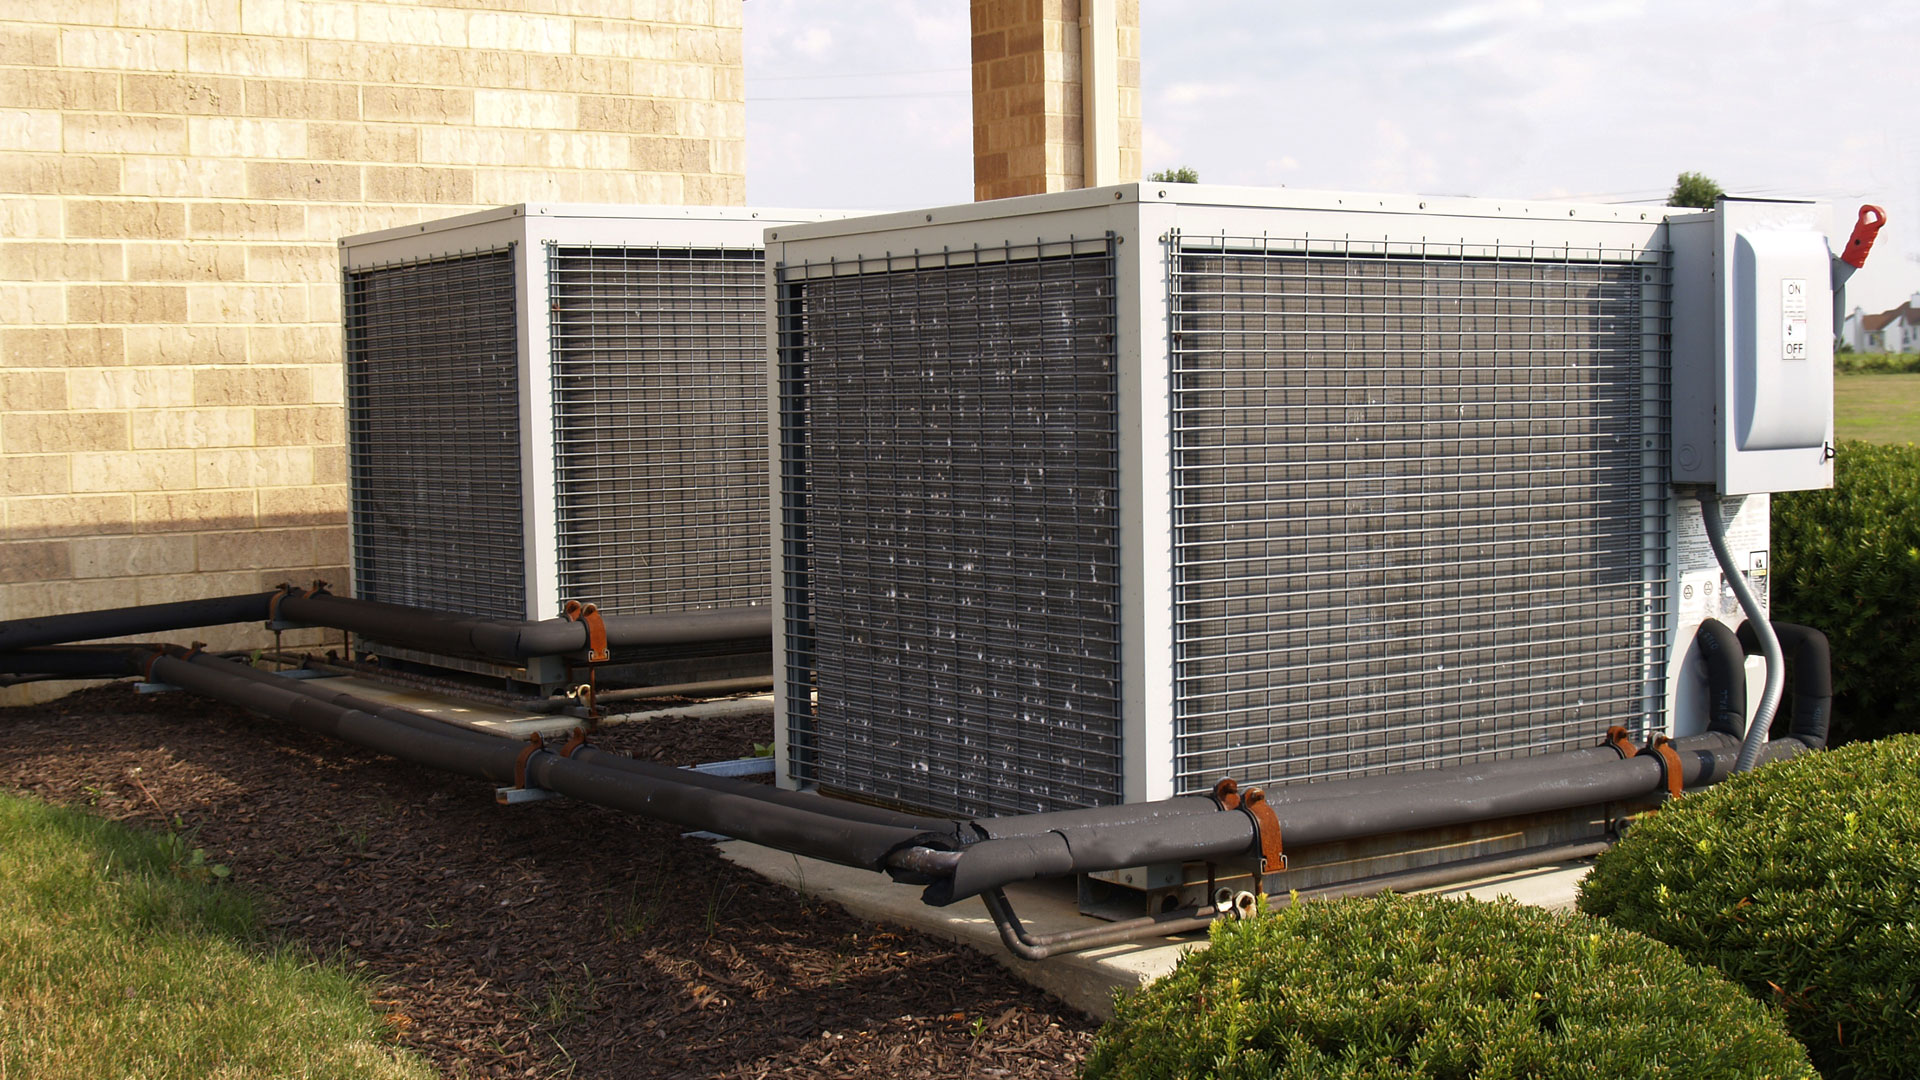 Knoxville Residential HVAC